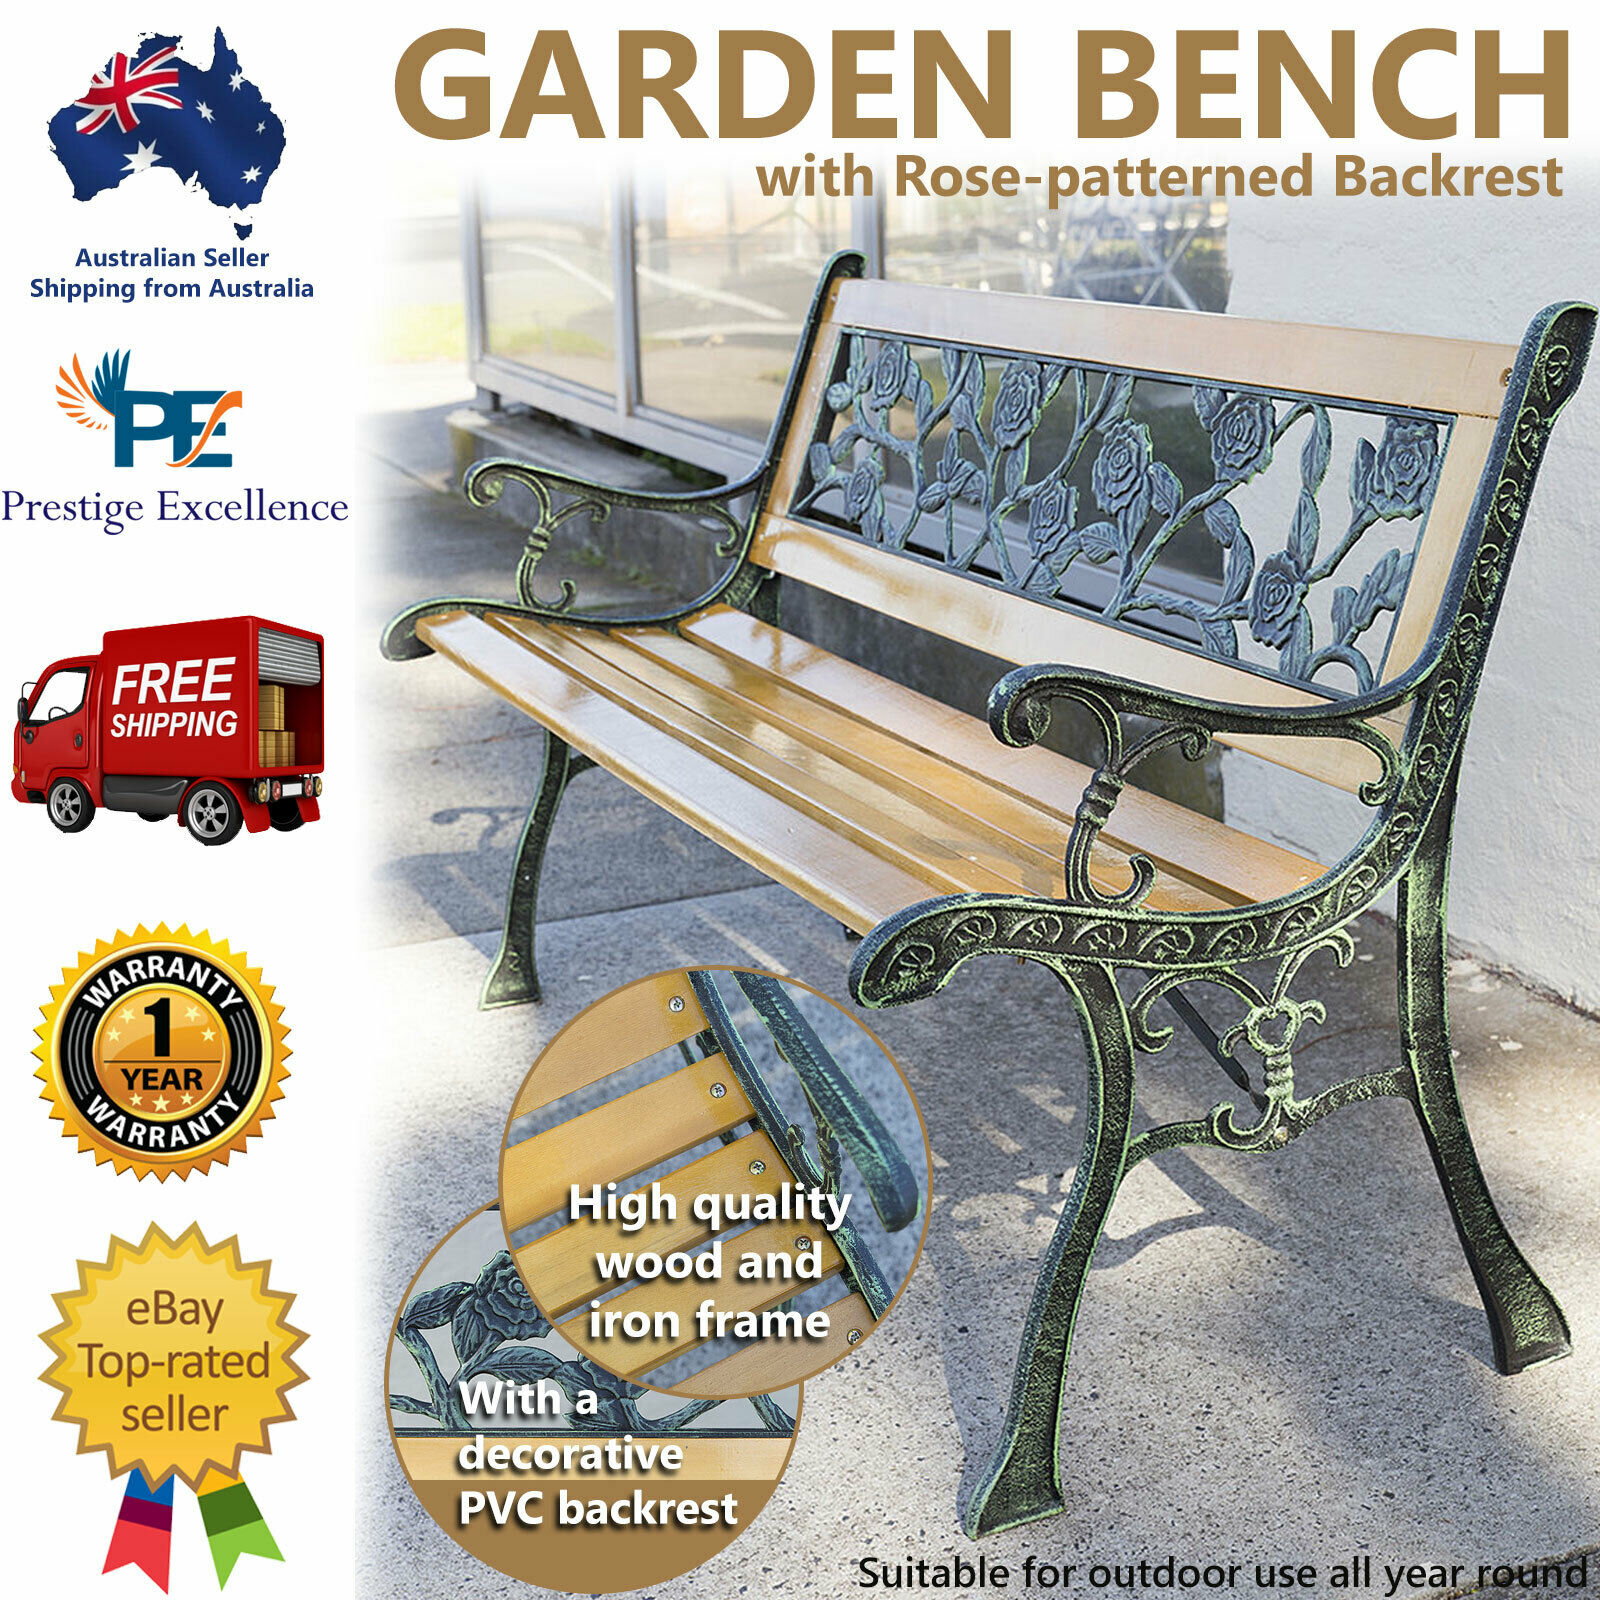 Garden Furniture - Wooden Garden Bench Outdoor Furniture Park Patio Seat Lounge Chair Timber Metal